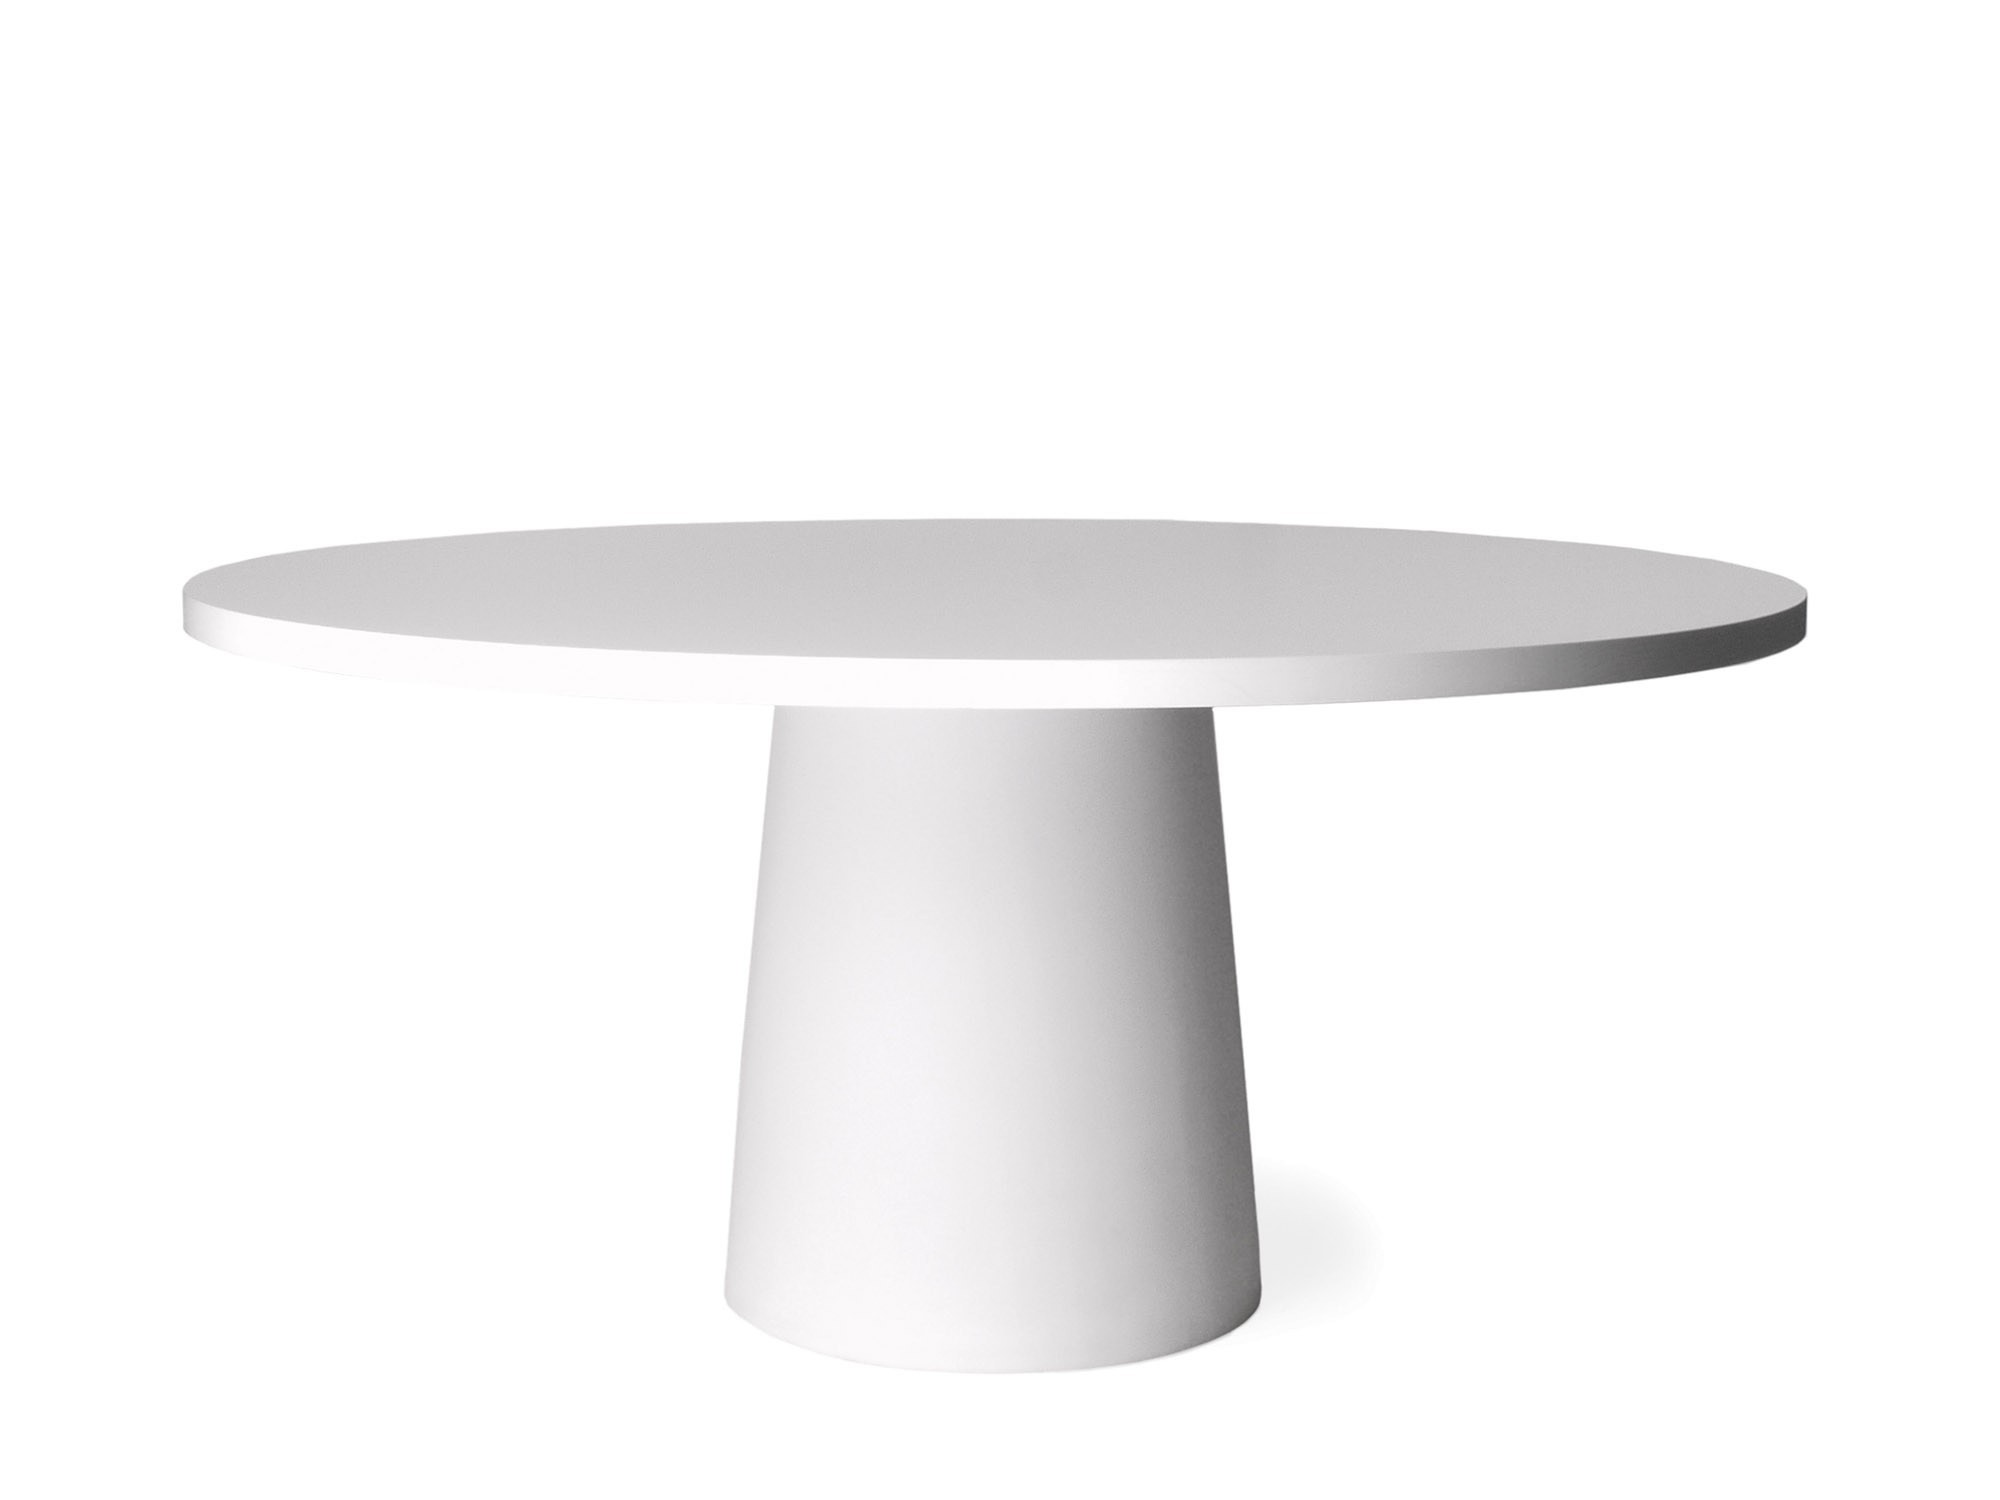 Container Tafel Moooi : Moooi container table with 71 x 56 base